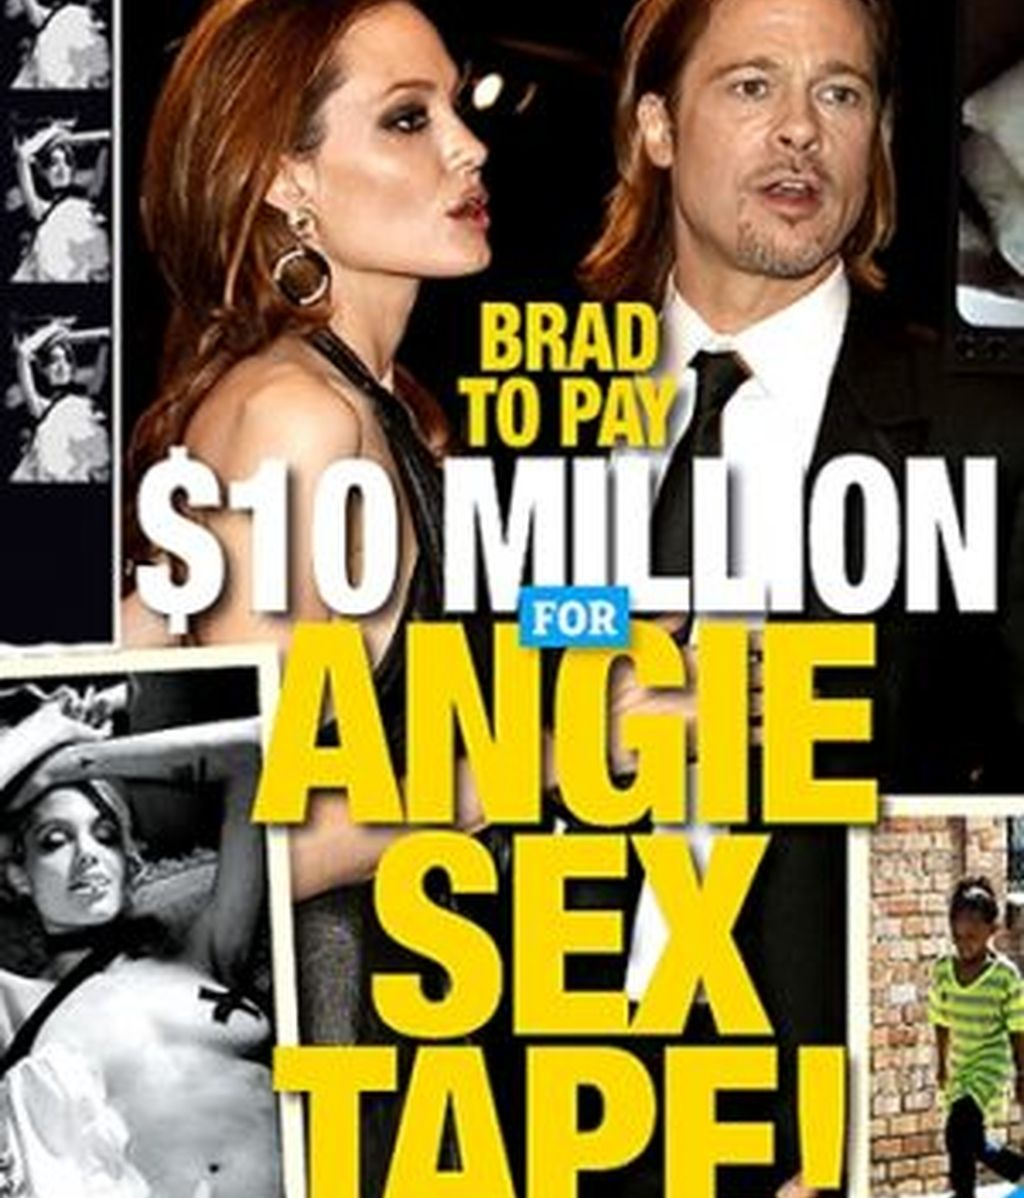 A punto de ver la luz un vídeo de sexual de Angelina Jolie. Foto: The National Enquirer